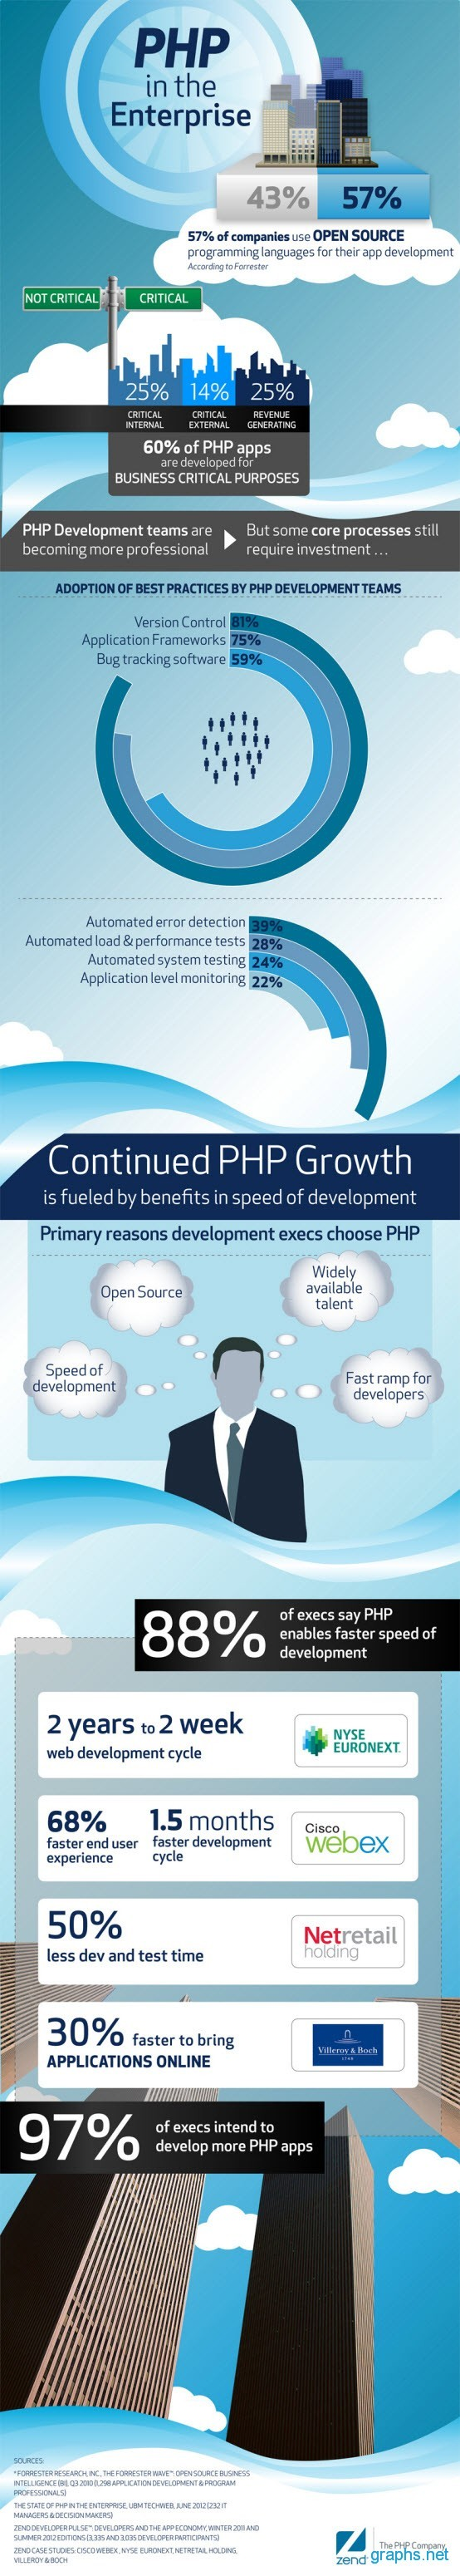 Using PHP in the Enterprise